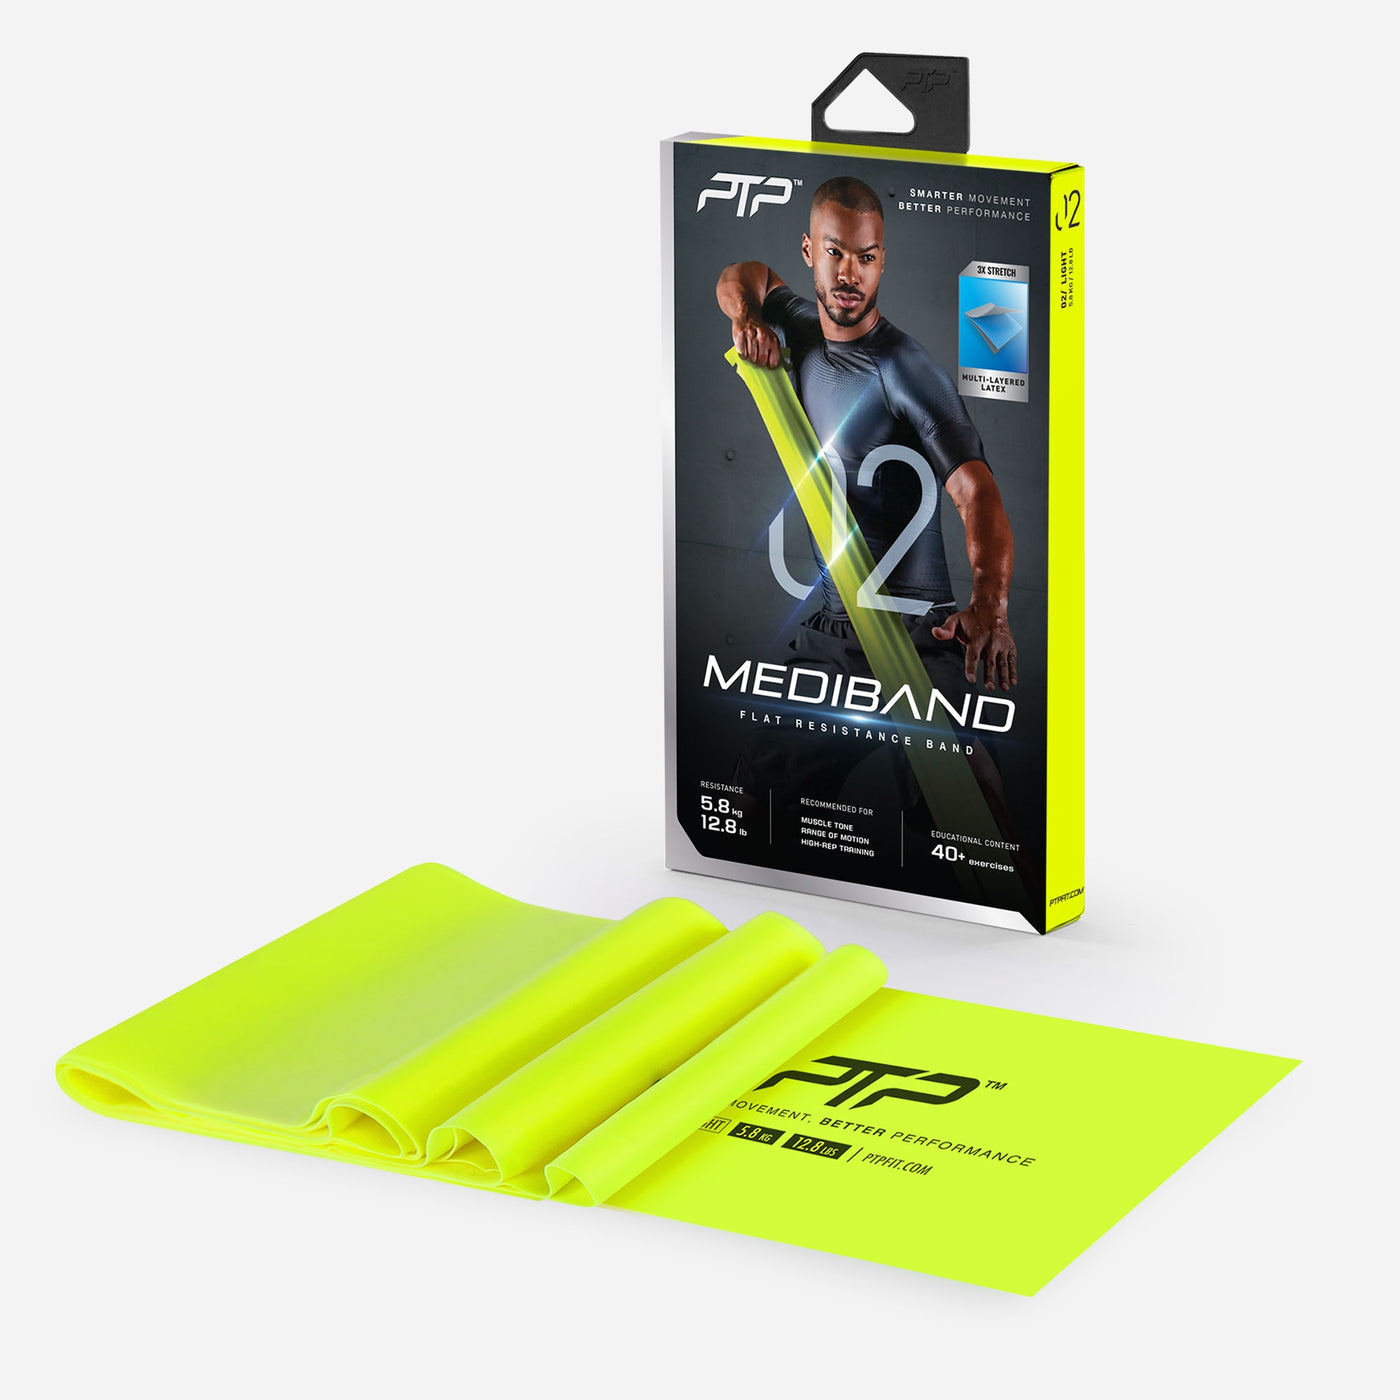 MediBand Light - Flat Resistance Band by PTP